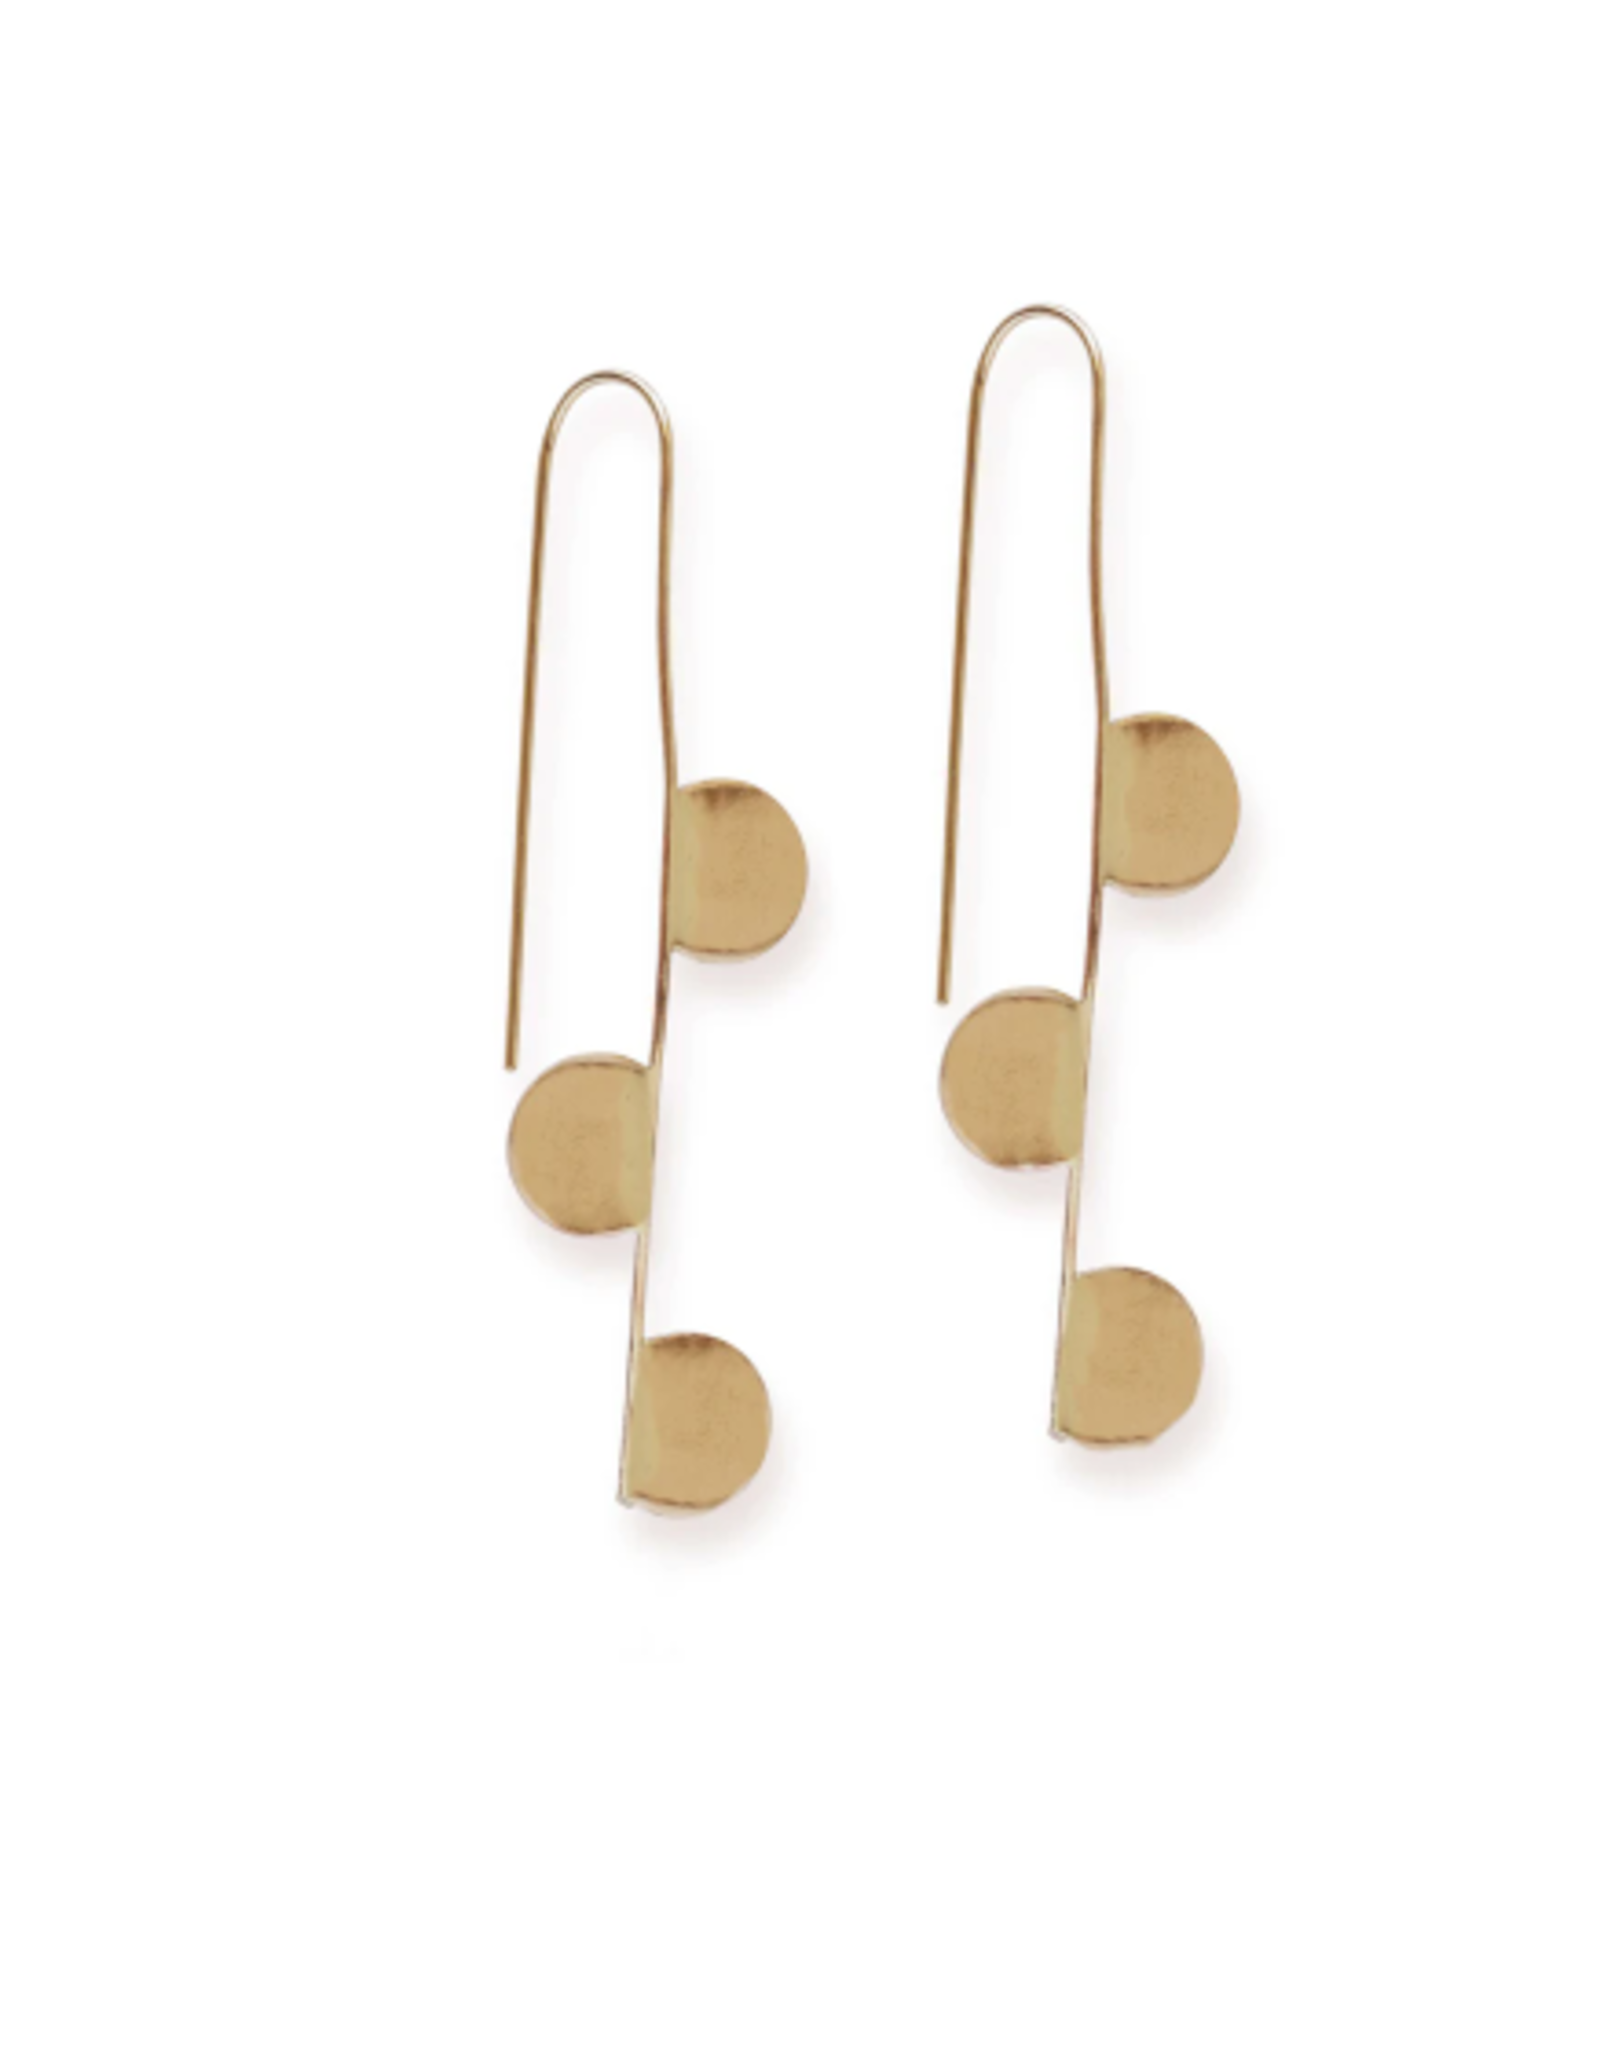 Ink + Alloy Hook With Half Circles Brass Earrings